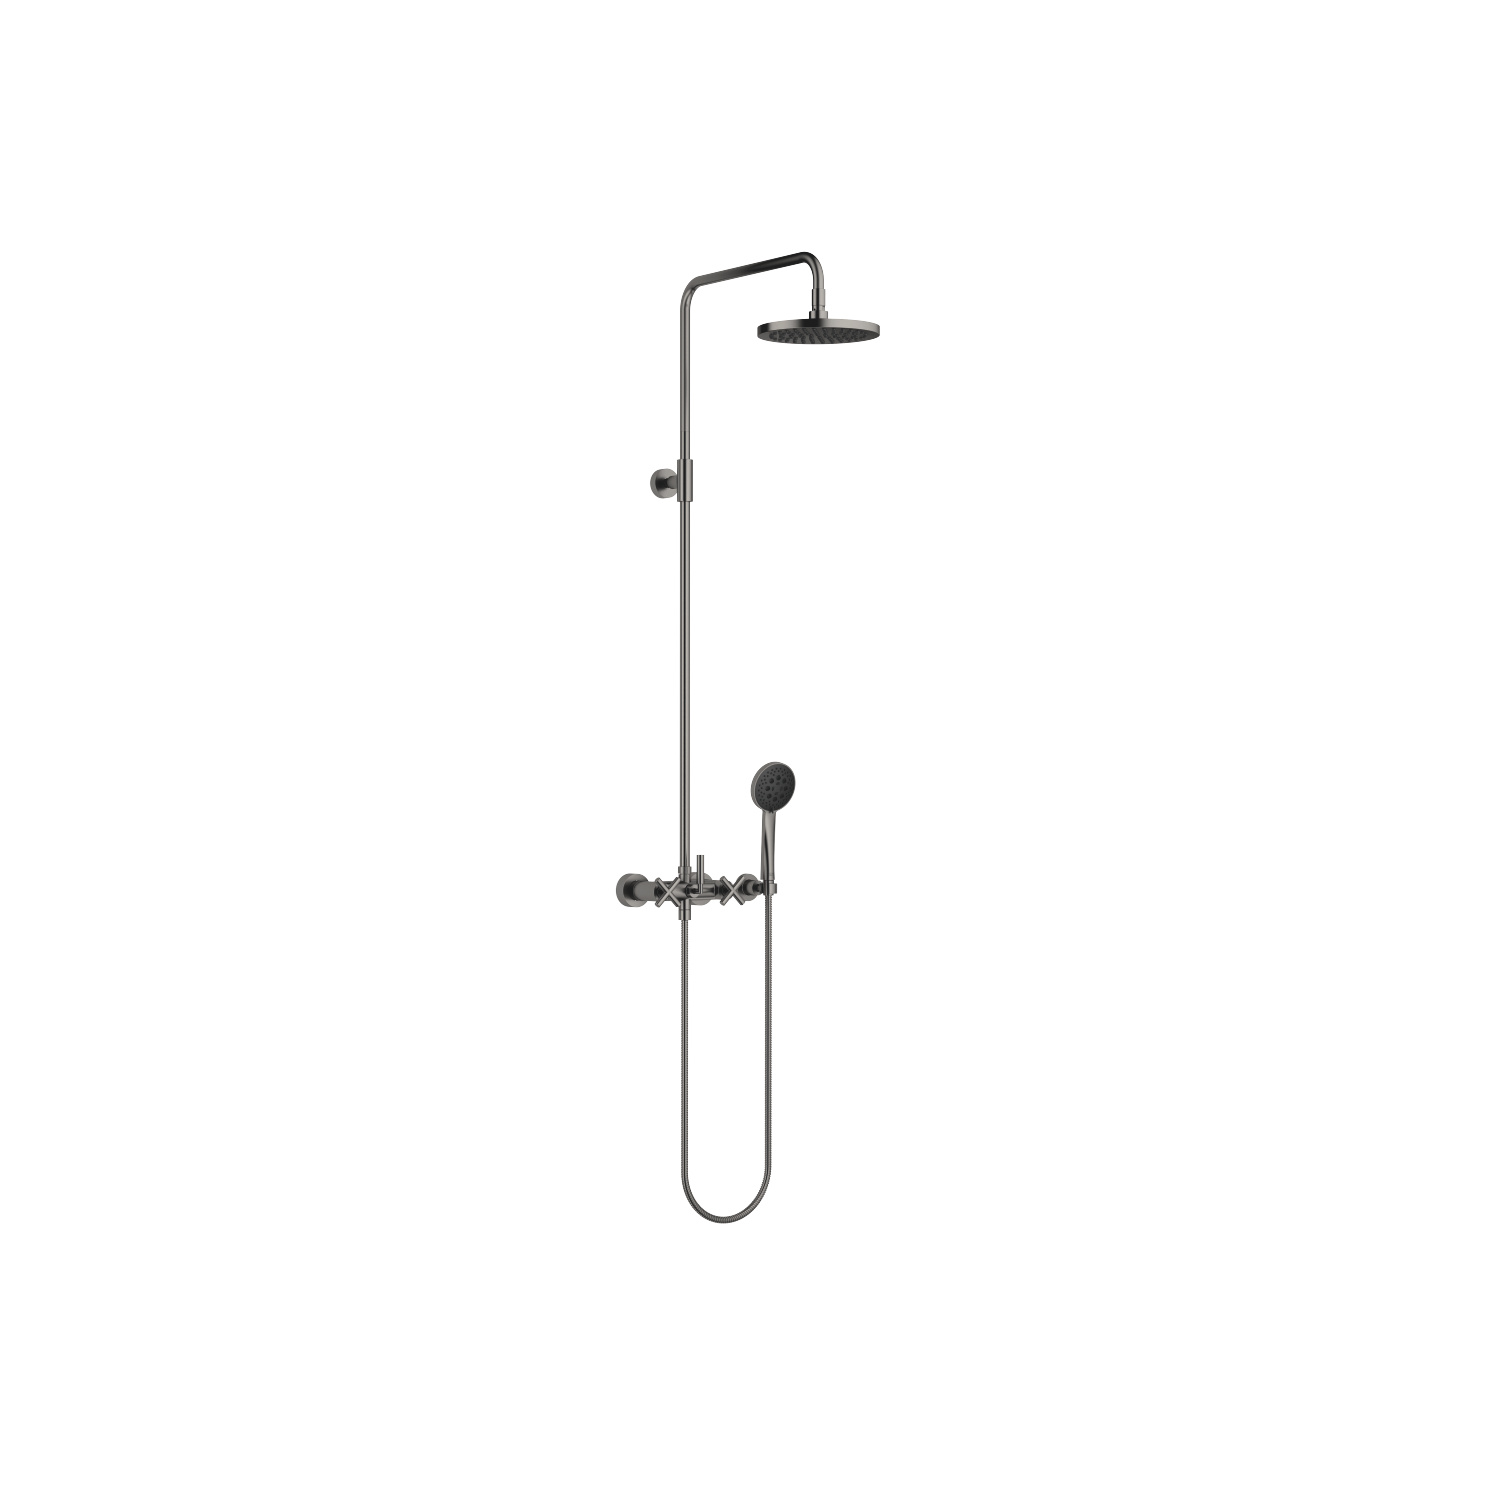 Shower mixer for wall mounting with fixed and hand shower - Dark Platinum matt